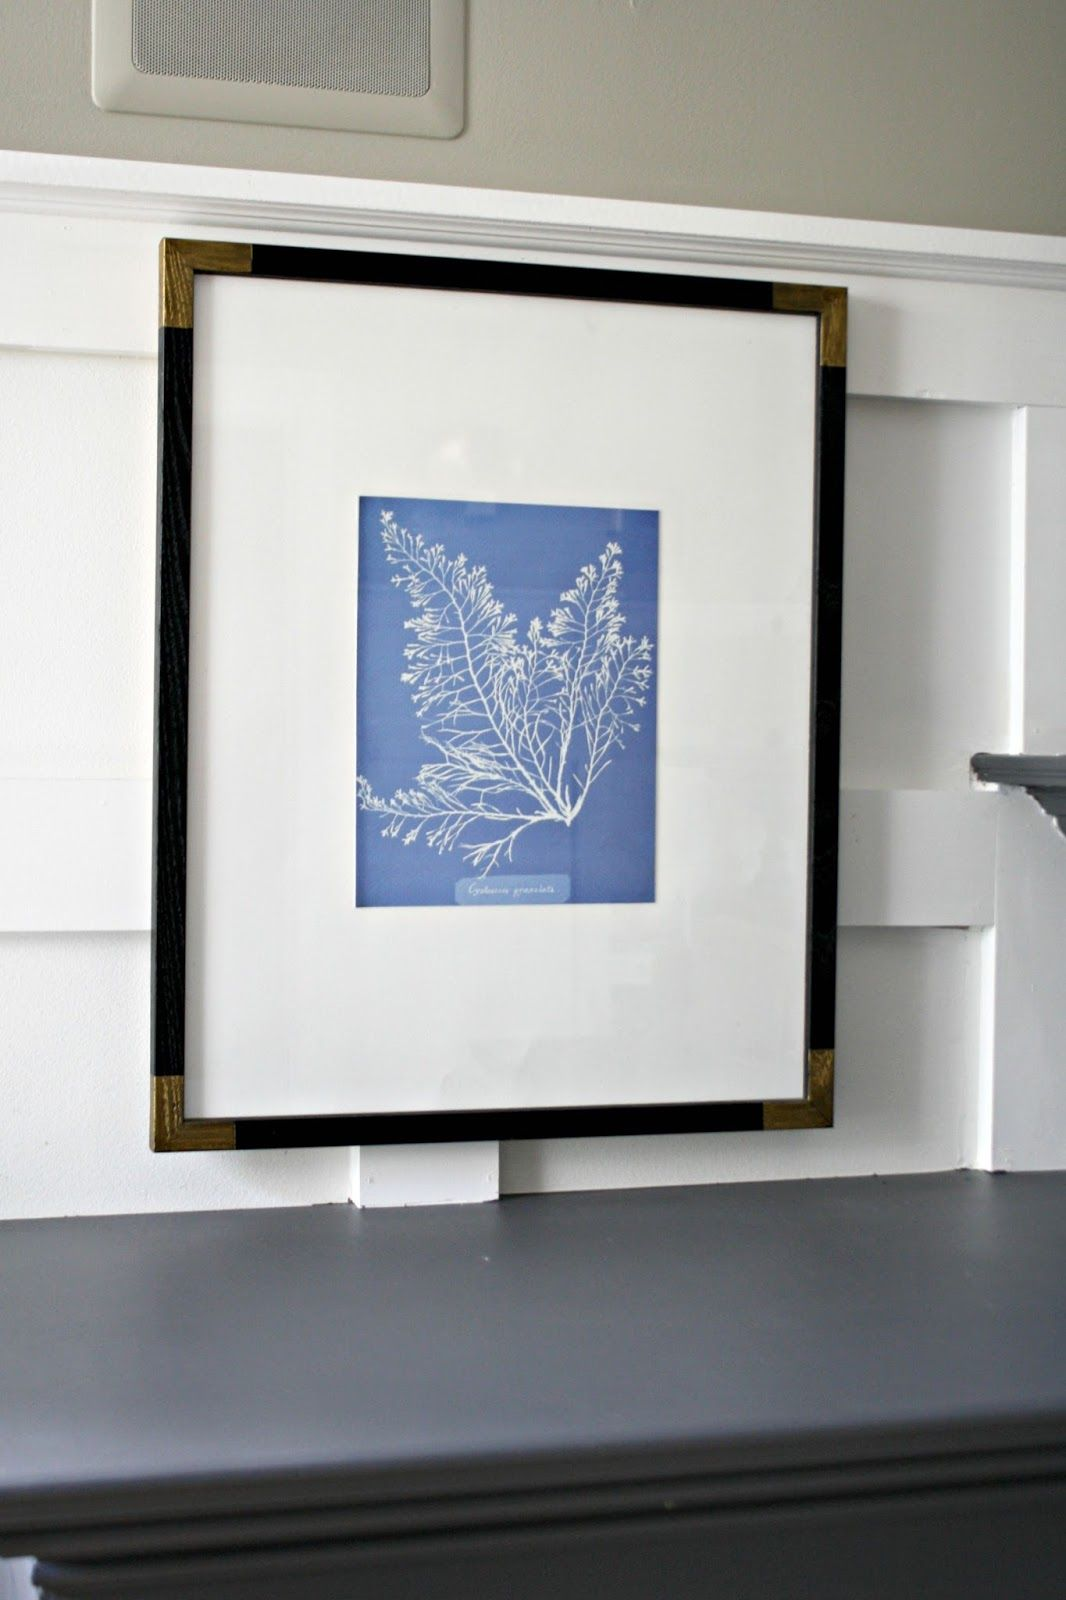 crayon framed for creating framing is drew conte a ikea drawing frame pretty matting poster artist on am artwork matted mats me so img art this one beautiful found at project easy and i budget